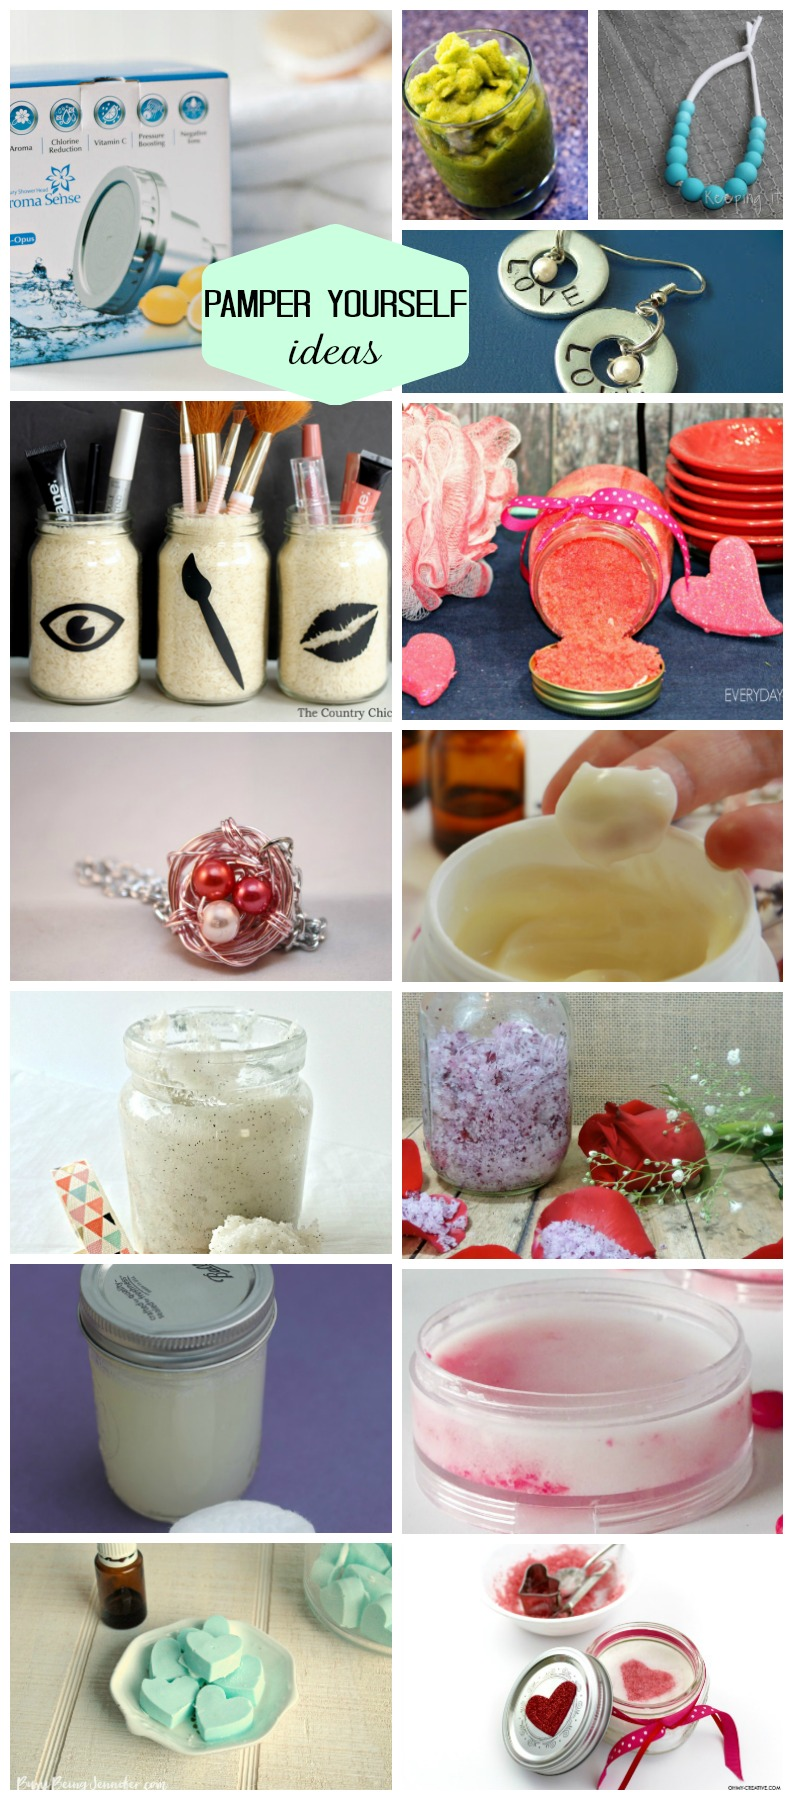 Awesome DIY ideas to pamper yourself (also would make great gifts for Mother's days or teachers)